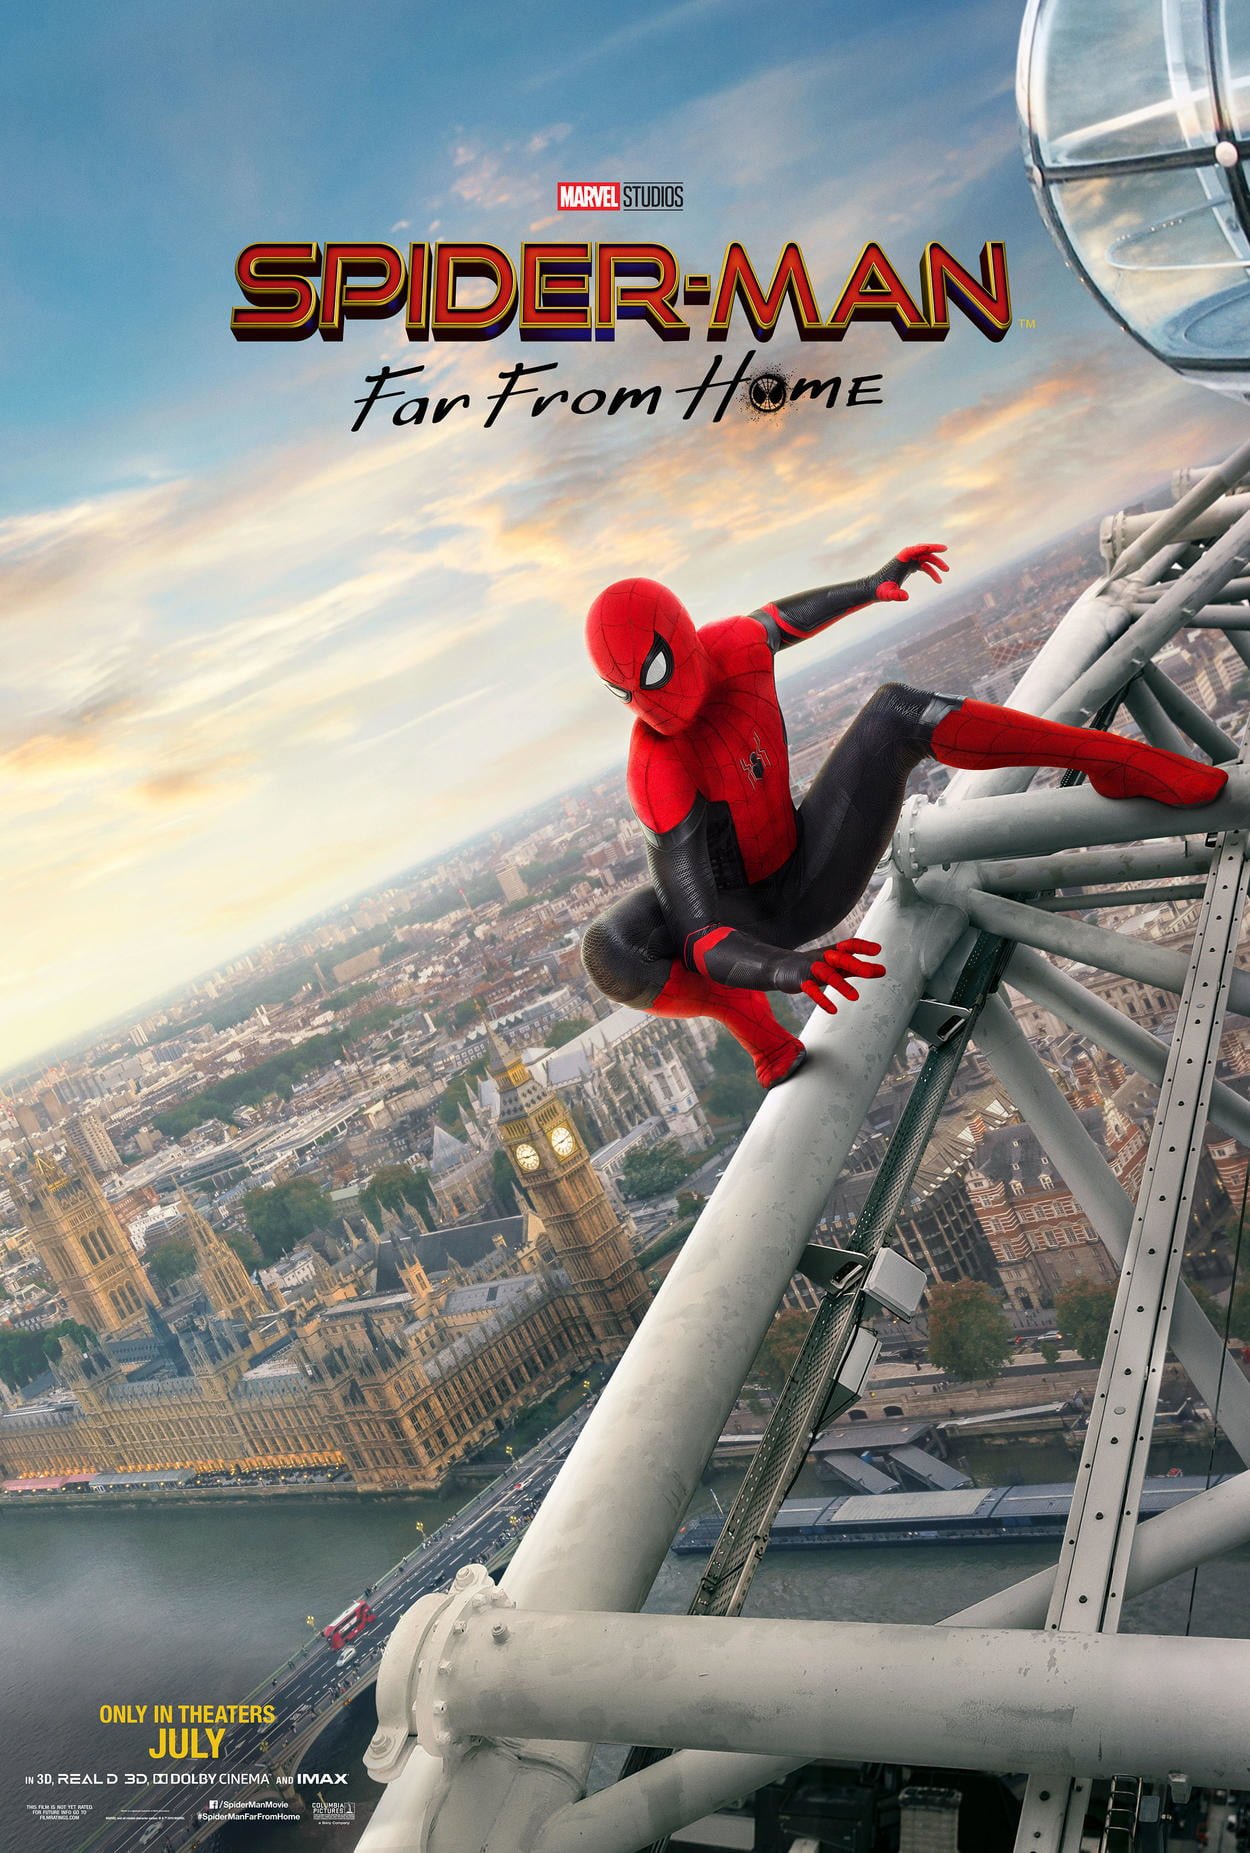 Spider-Man: Far From Home: Everything We Know About the